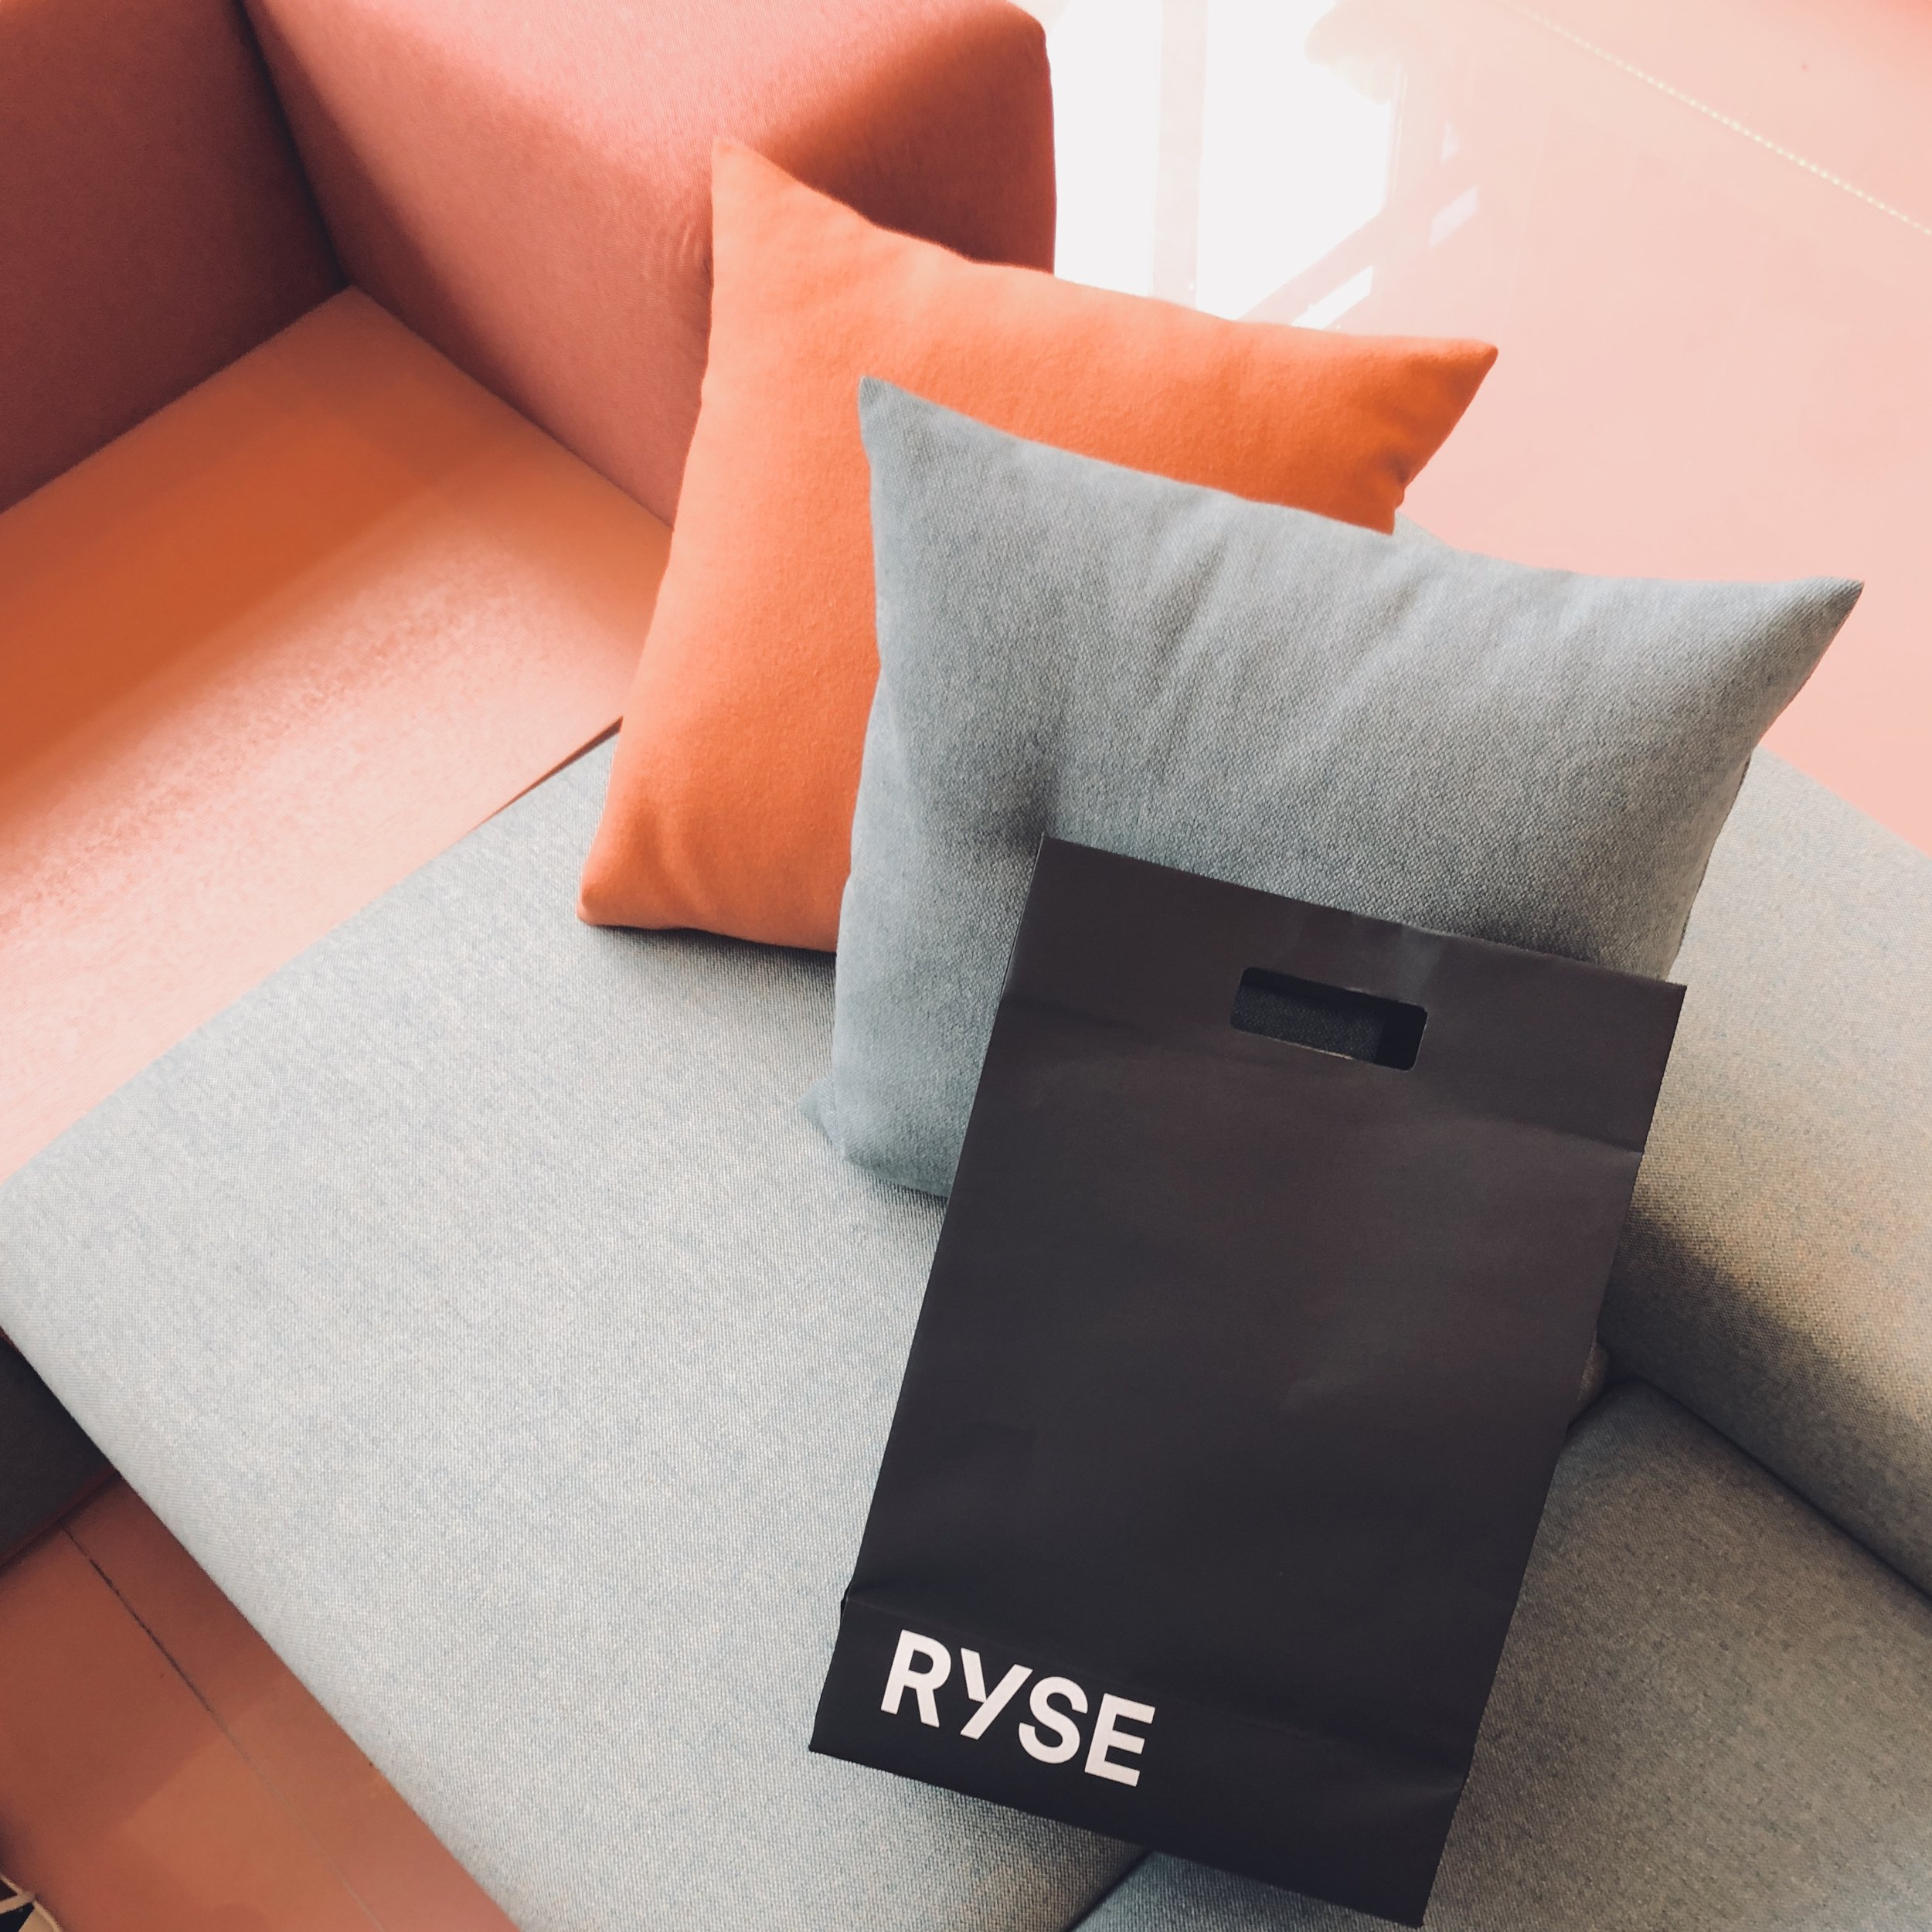 In the bag, a take home gift for myself- RYSE bathrobes designed by Korean indie fashion label, IISE.